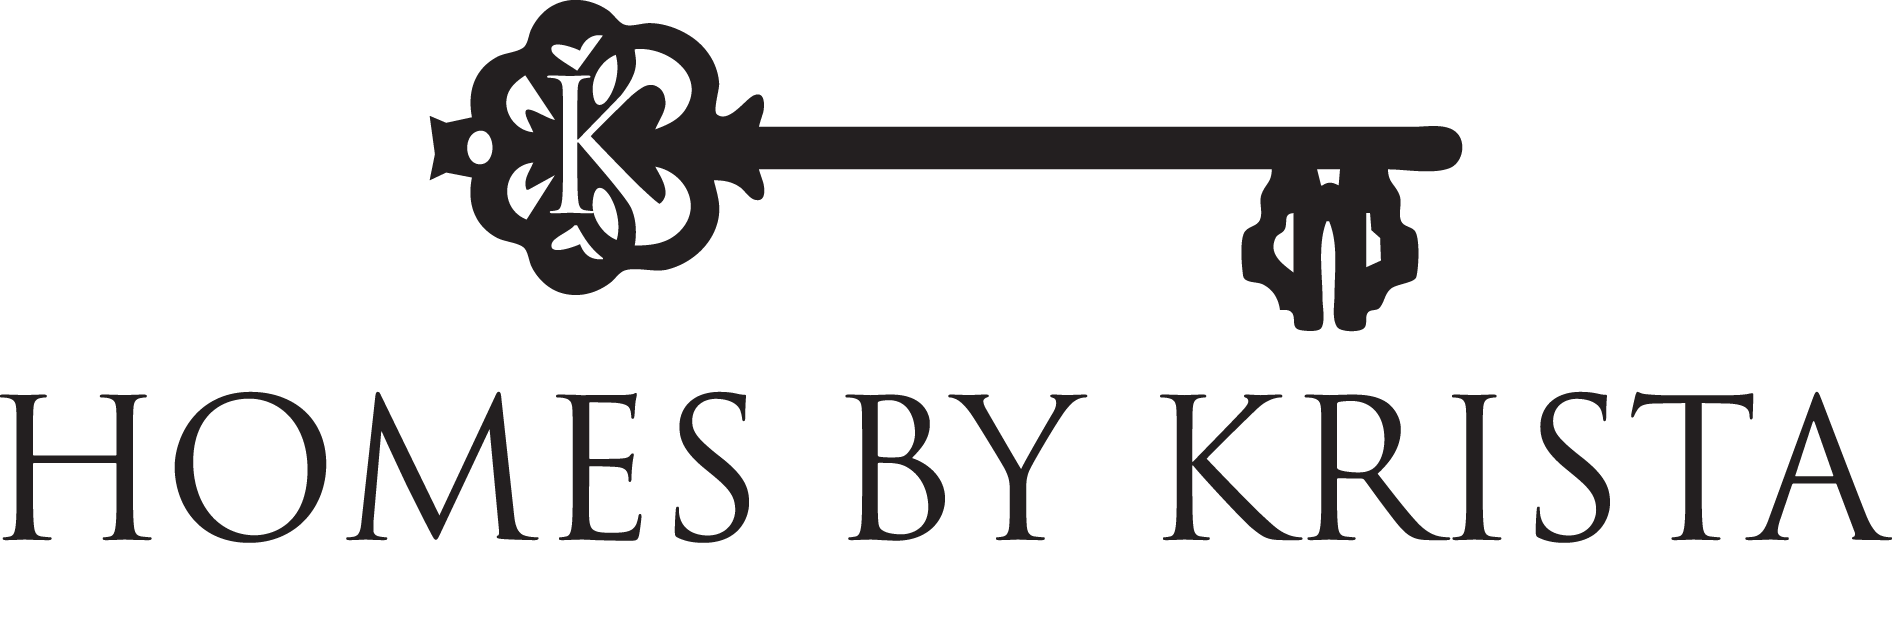 Homes By Krista logo